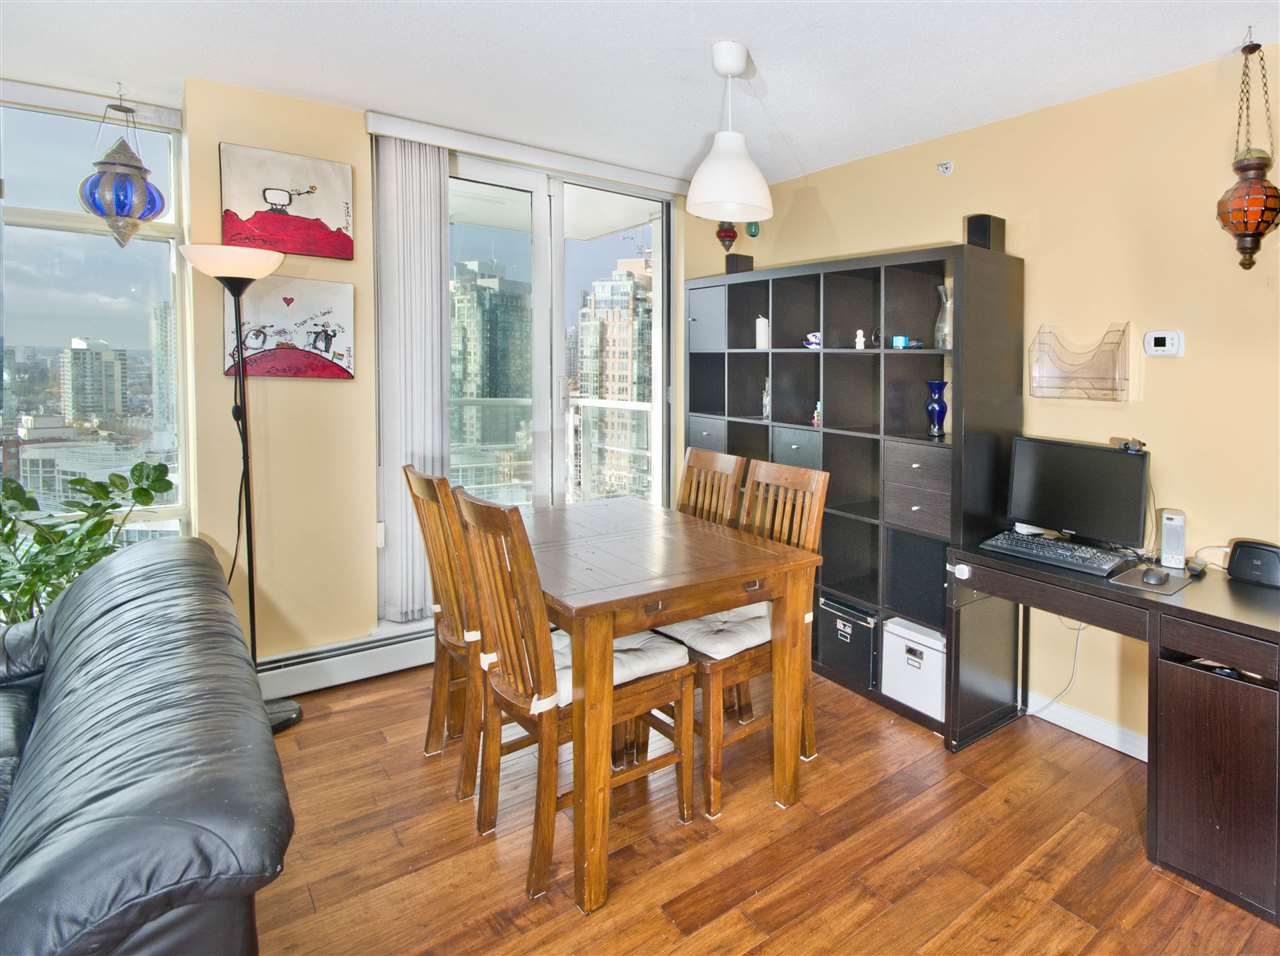 "Photo 3: 2108 198 AQUARIUS Mews in Vancouver: Yaletown Condo for sale in ""THE AQUARIUS"" (Vancouver West)  : MLS® # R2125703"